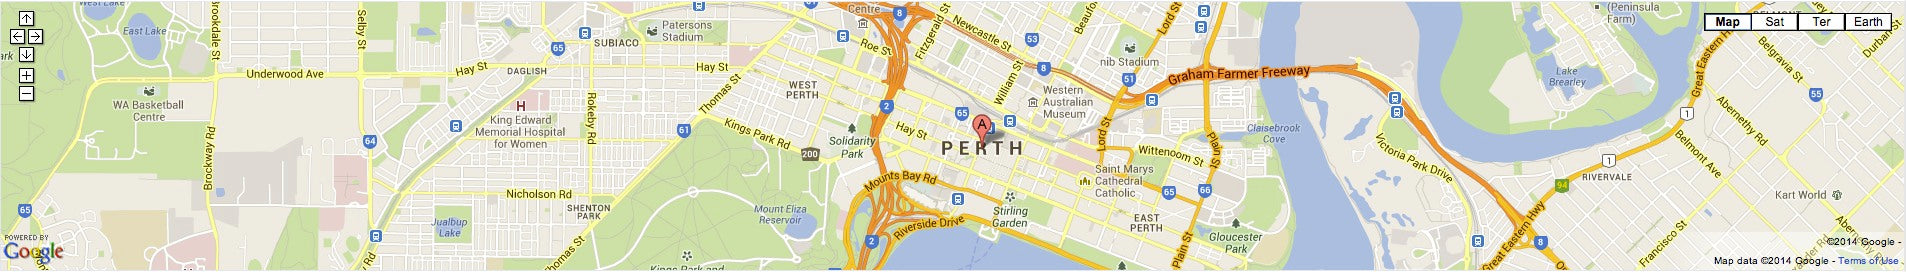 Perth information security